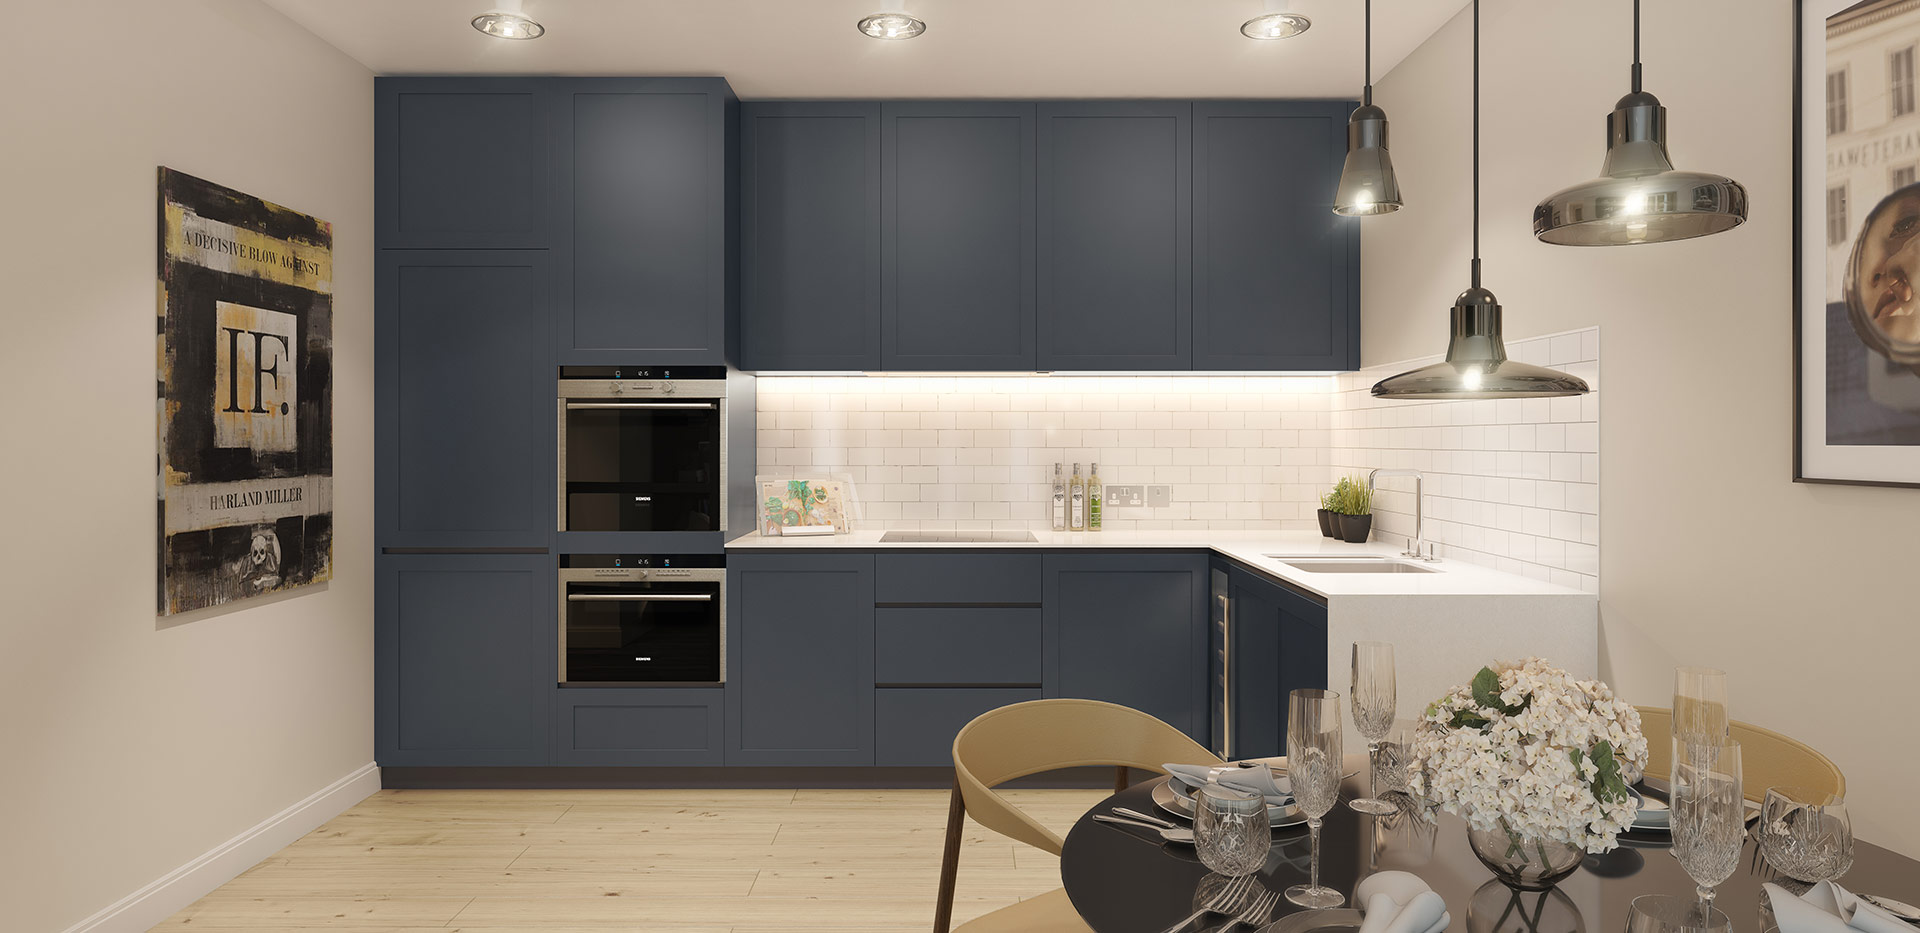 Berkeley, Chiswick Gate, Apartments, Kitchen, Interior